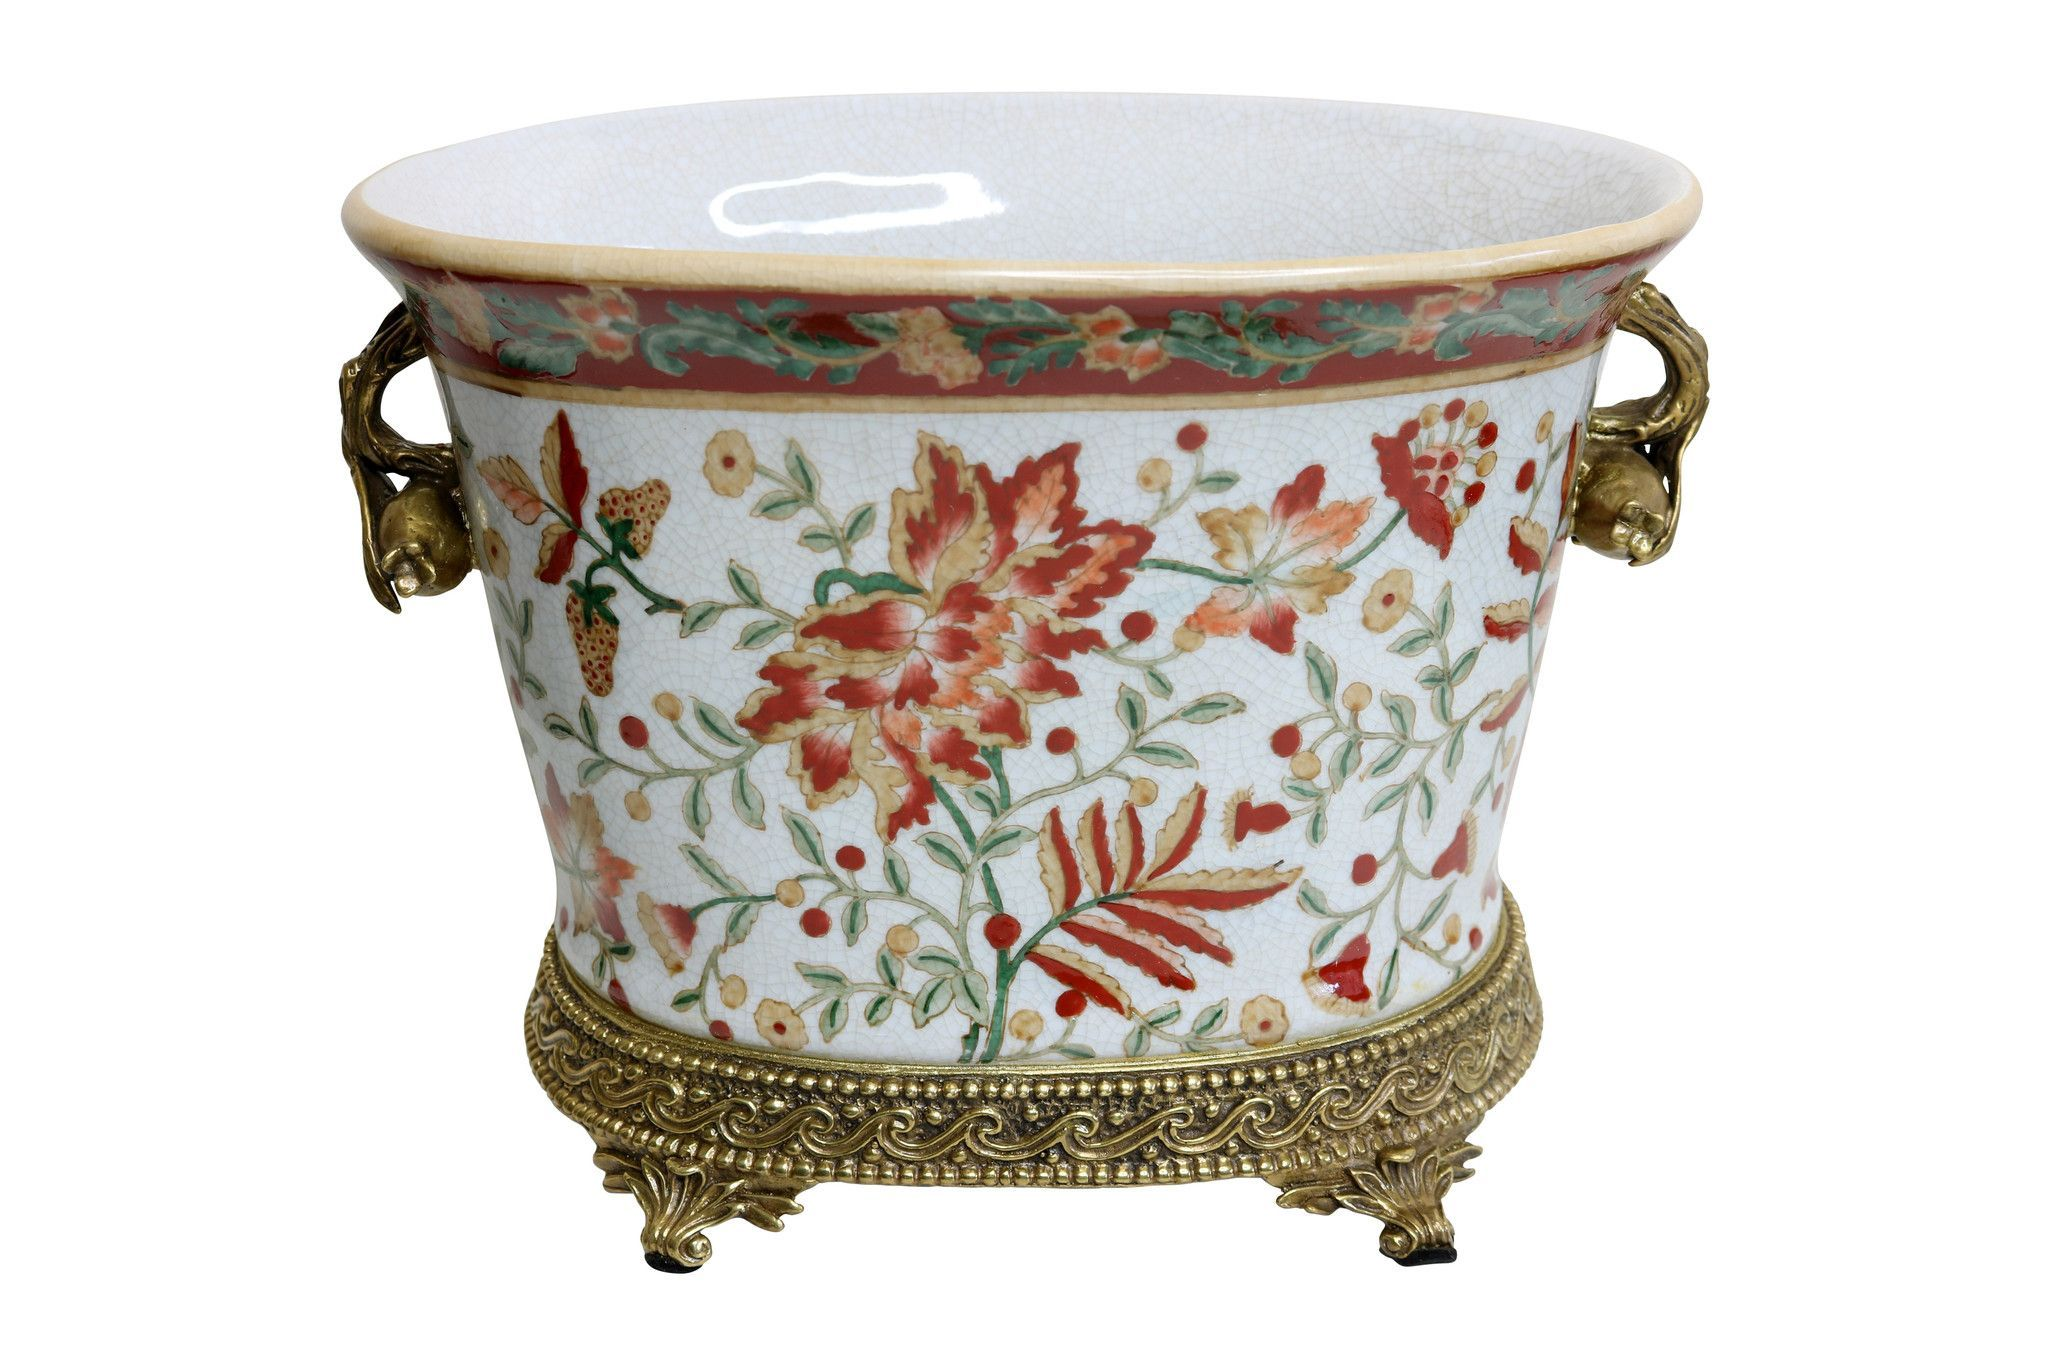 Oval Floral Pattern Chinoiserie Porcelain Oval Flower Pot Brass Ormolu Accent